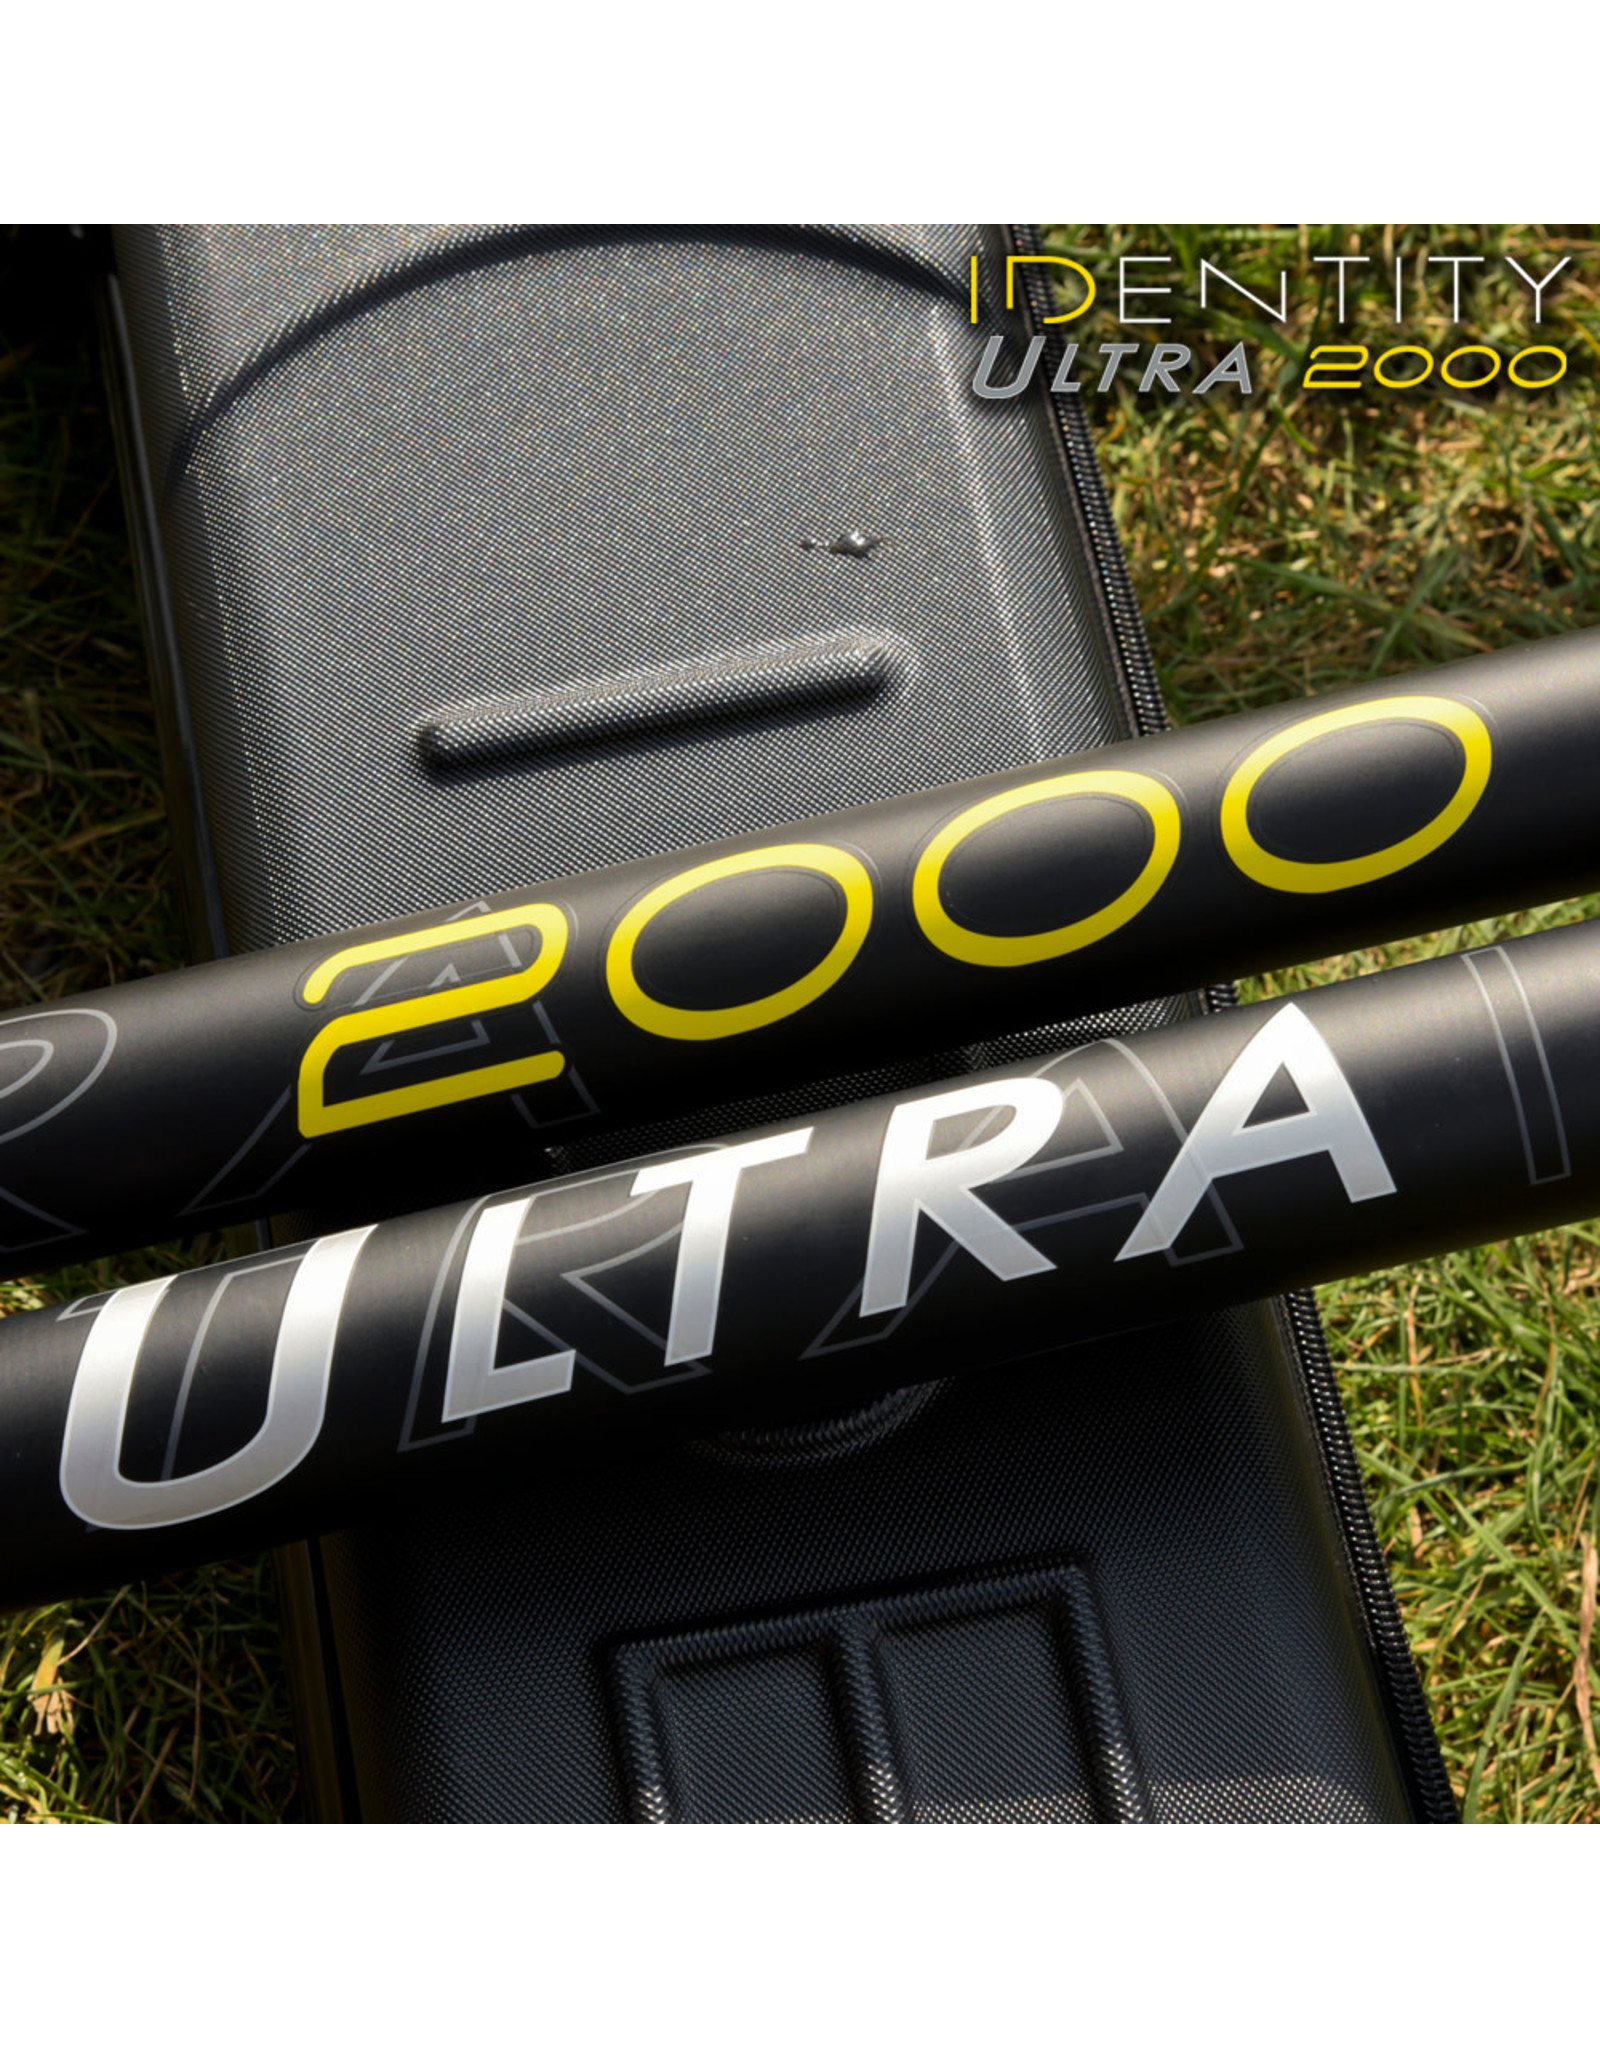 CRESTA PACK POWER 2000 PROTECT 10.0M